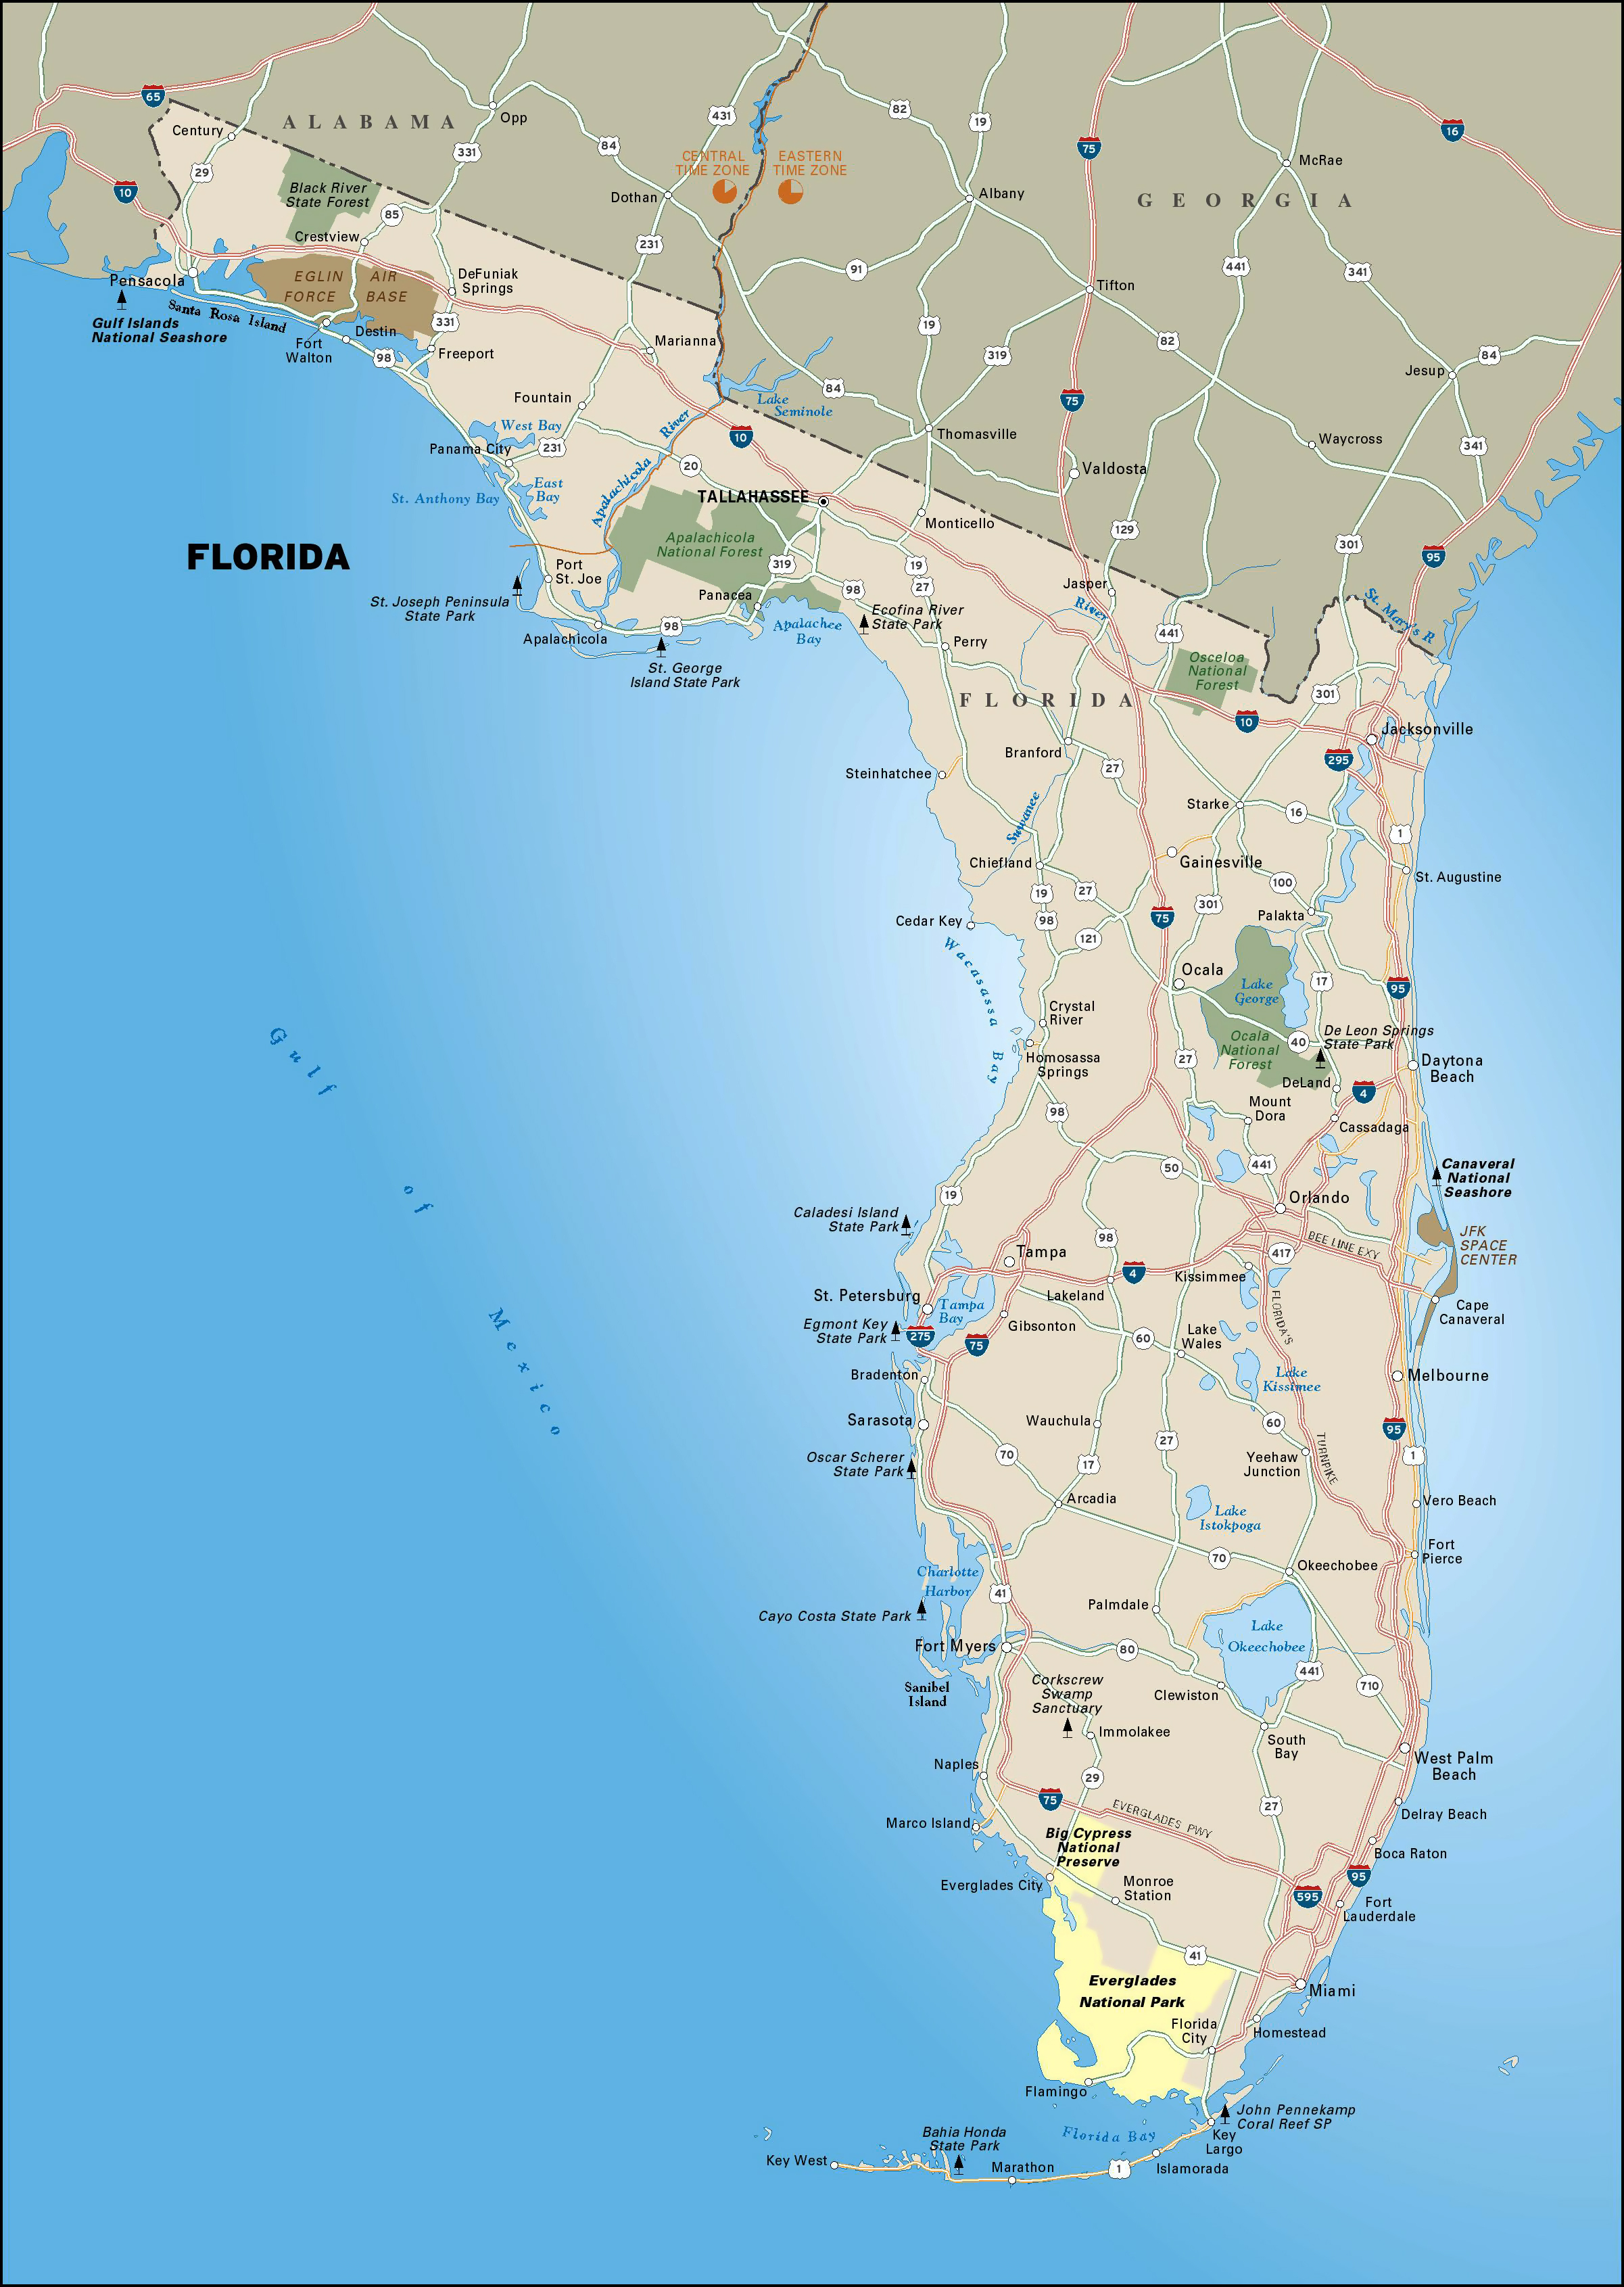 Large Highways Map Of Florida State With National Parks | Vidiani - Florida Parks Map